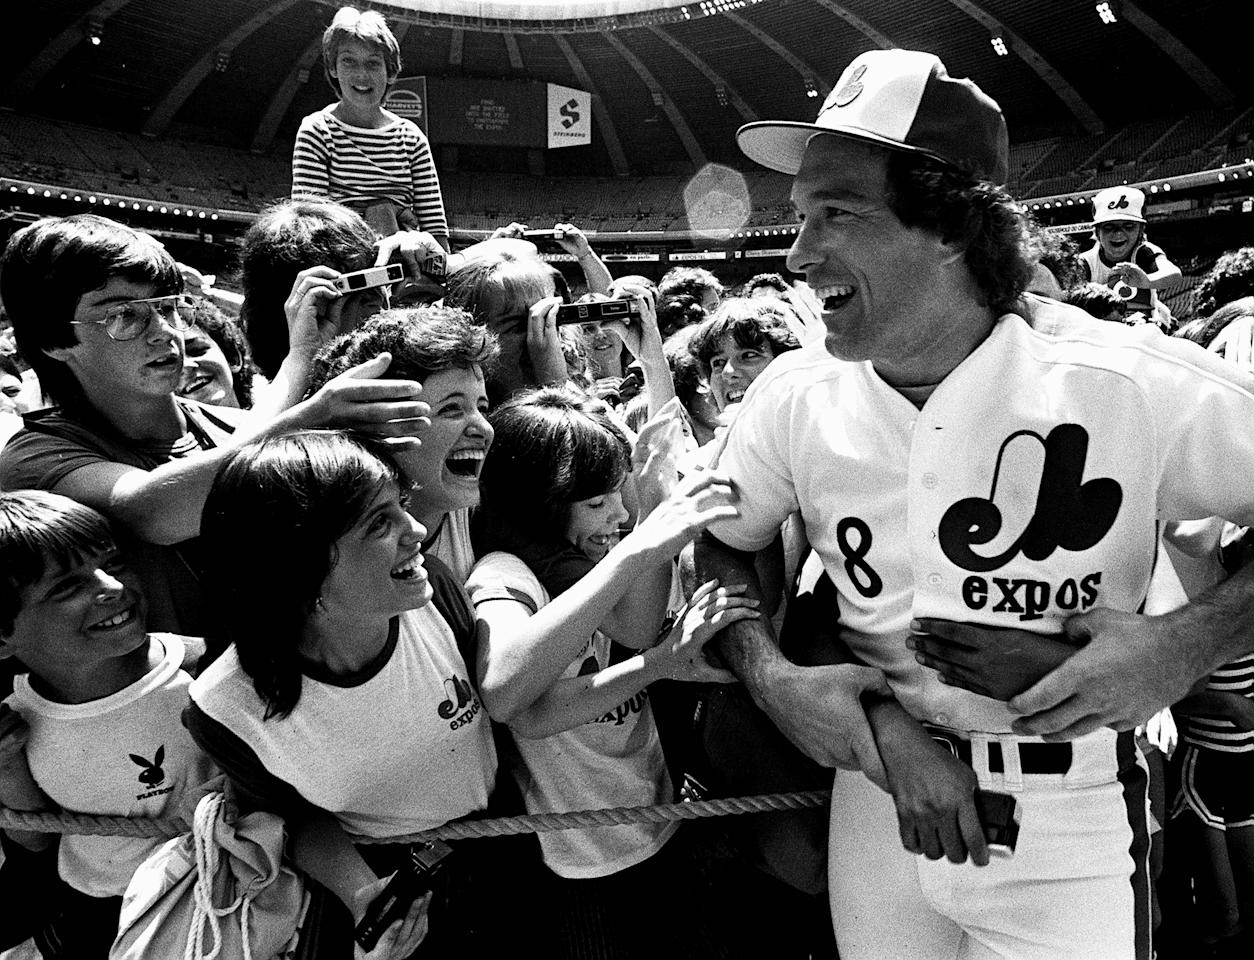 FILE - In this June 24, 1983 file photo, Montreal Expos catcher Gary Carter is mobbed by admiring fans at camera day prior to a baseball game against the Pittsburgh Pirates in Montreal. Baseball Hall of Fame president Jeff Idelson said Thursday, Feb. 16, 2012, that Hall of Fame catcher Gary Carter has died. (AP Photo/The Canadian Press, Bernard Brault, File)